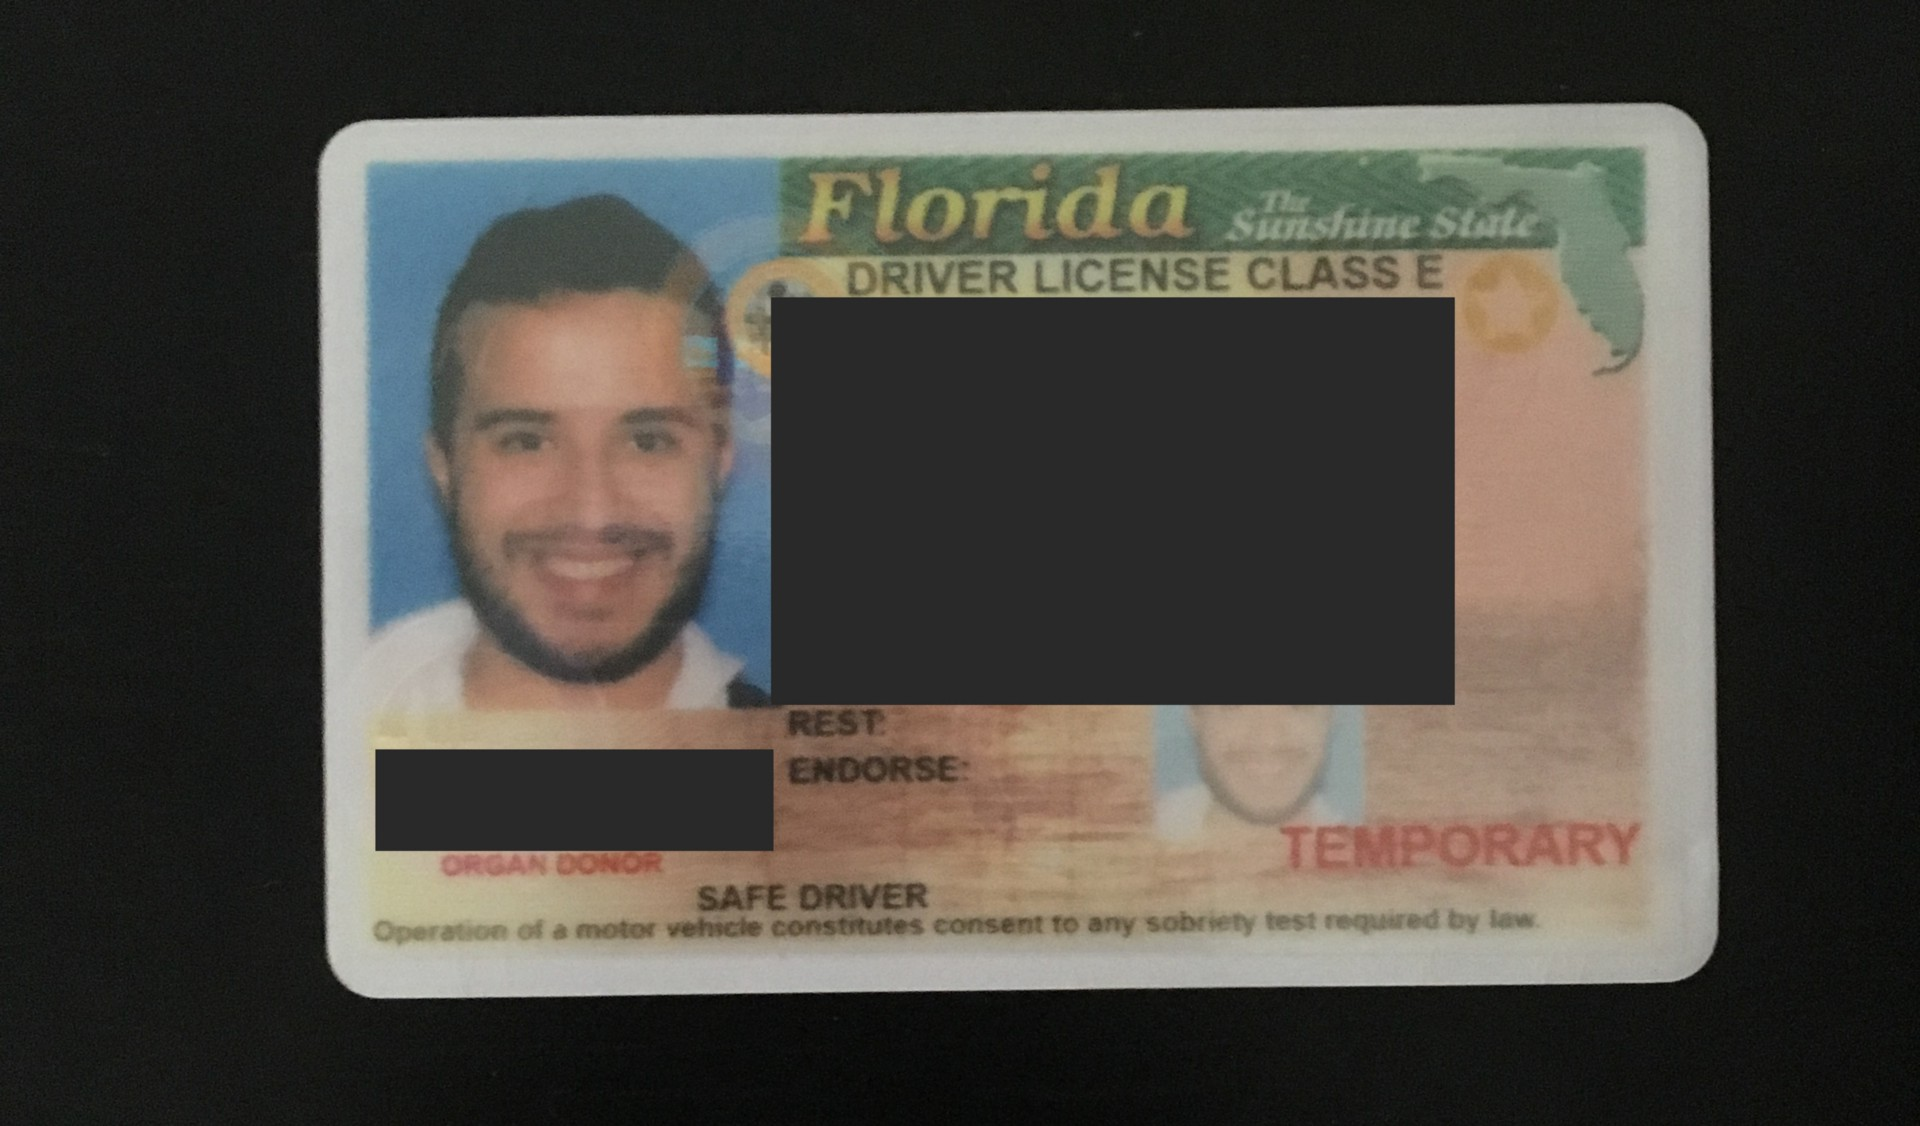 Npi And License Number Lookup: Lost Fl Drivers License